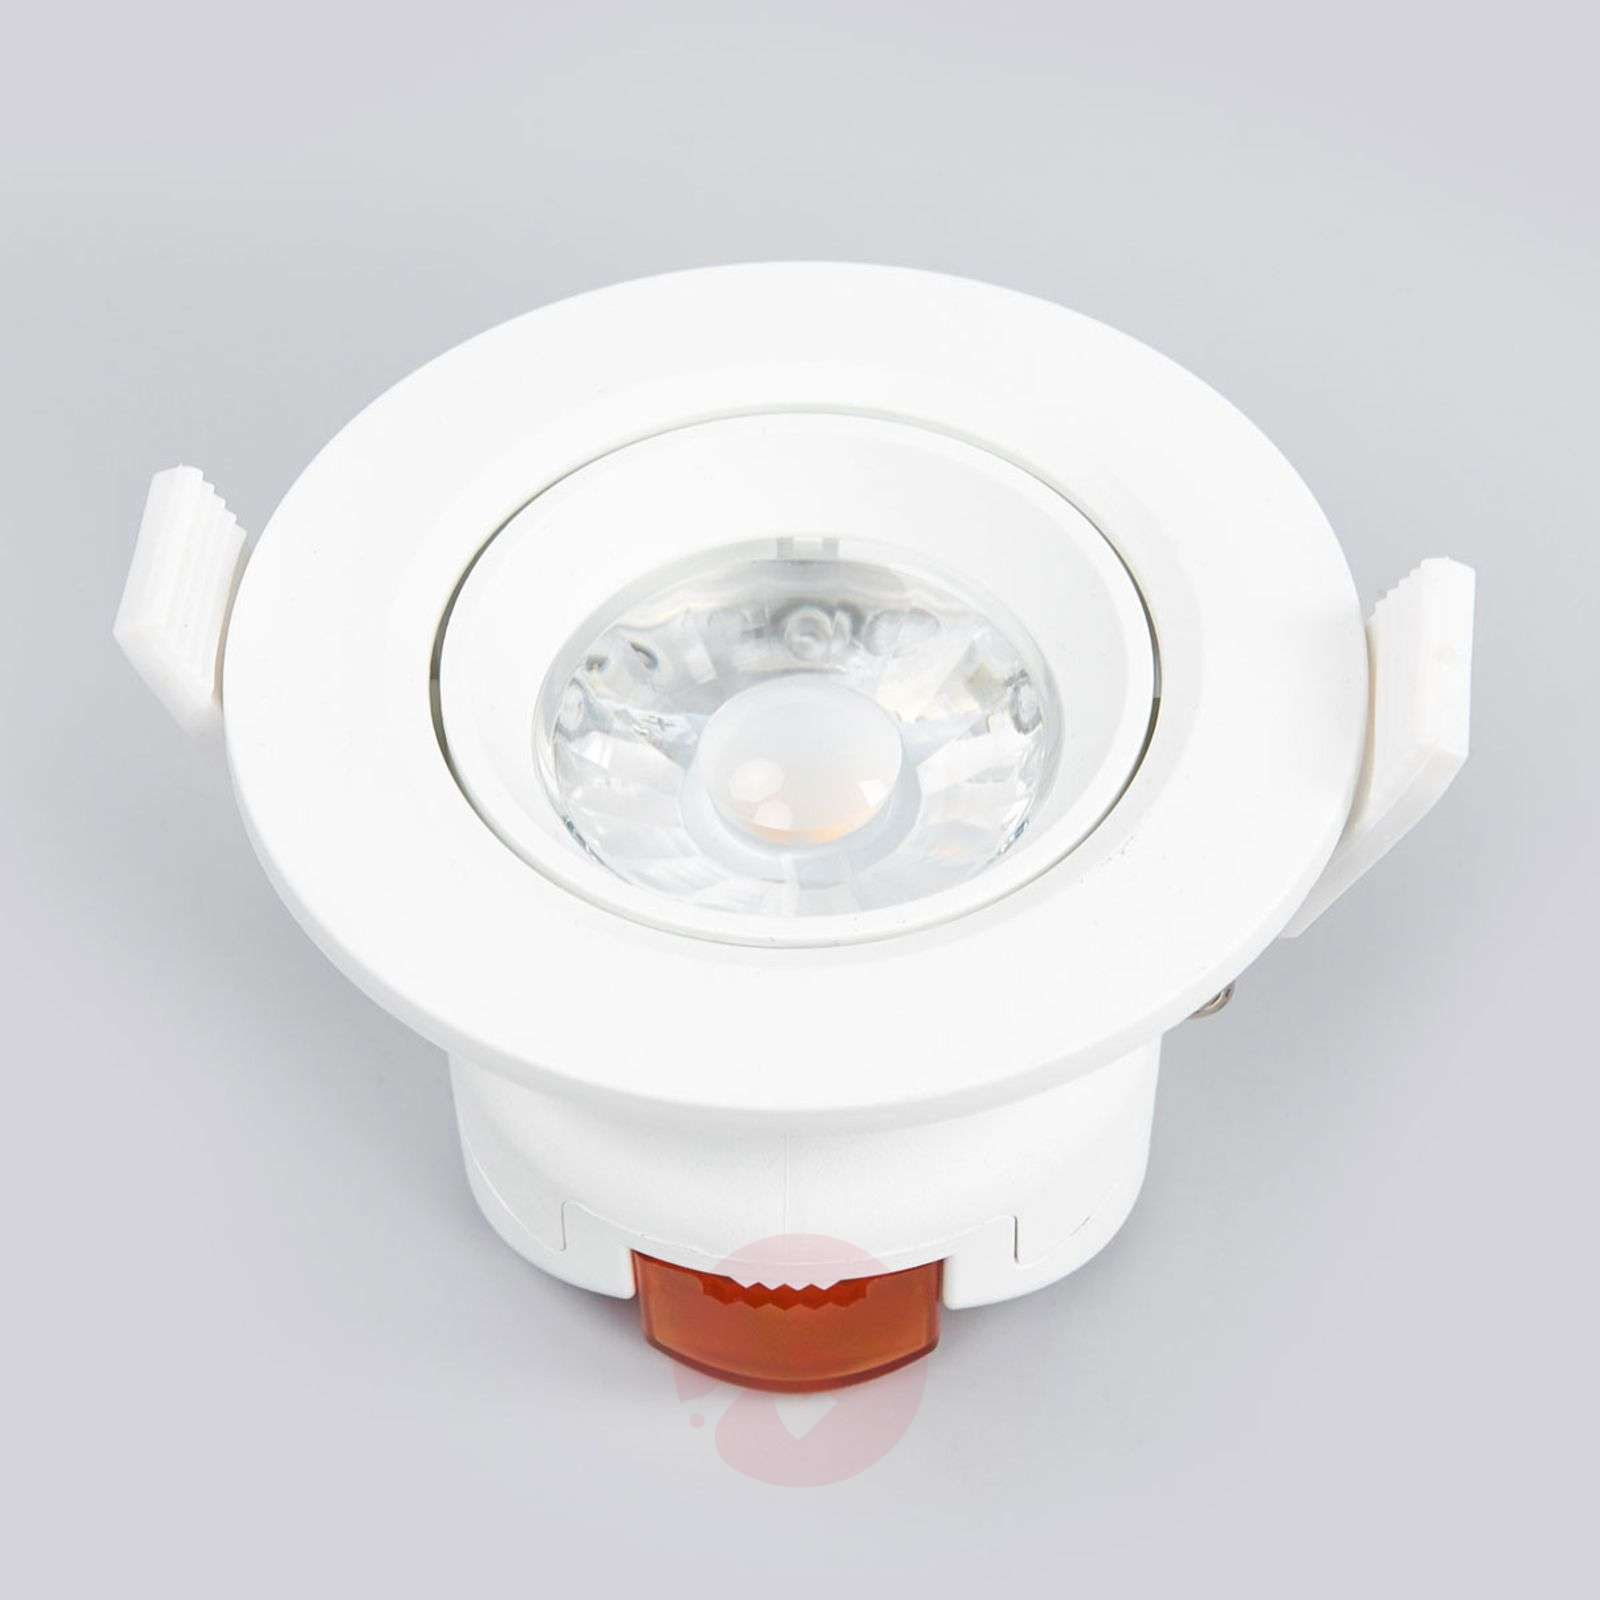 Quentin ronde led inbouwlamp wit, 6W-9978038-02